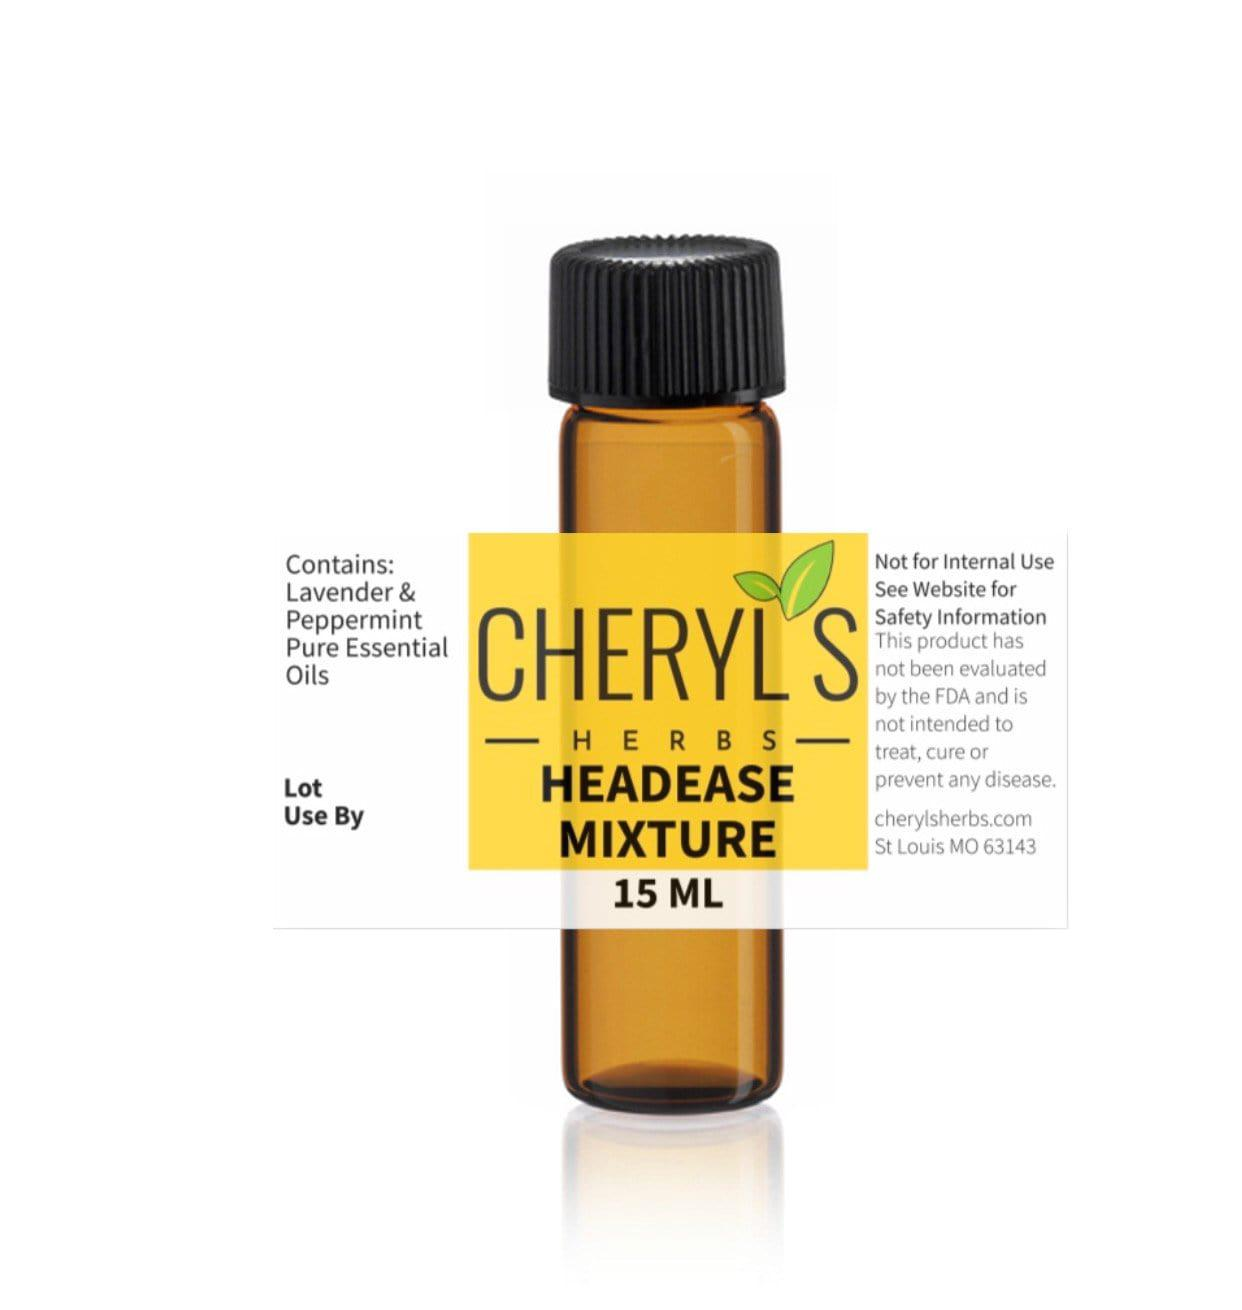 HEADEASE MIXTURE - Cheryls Herbs